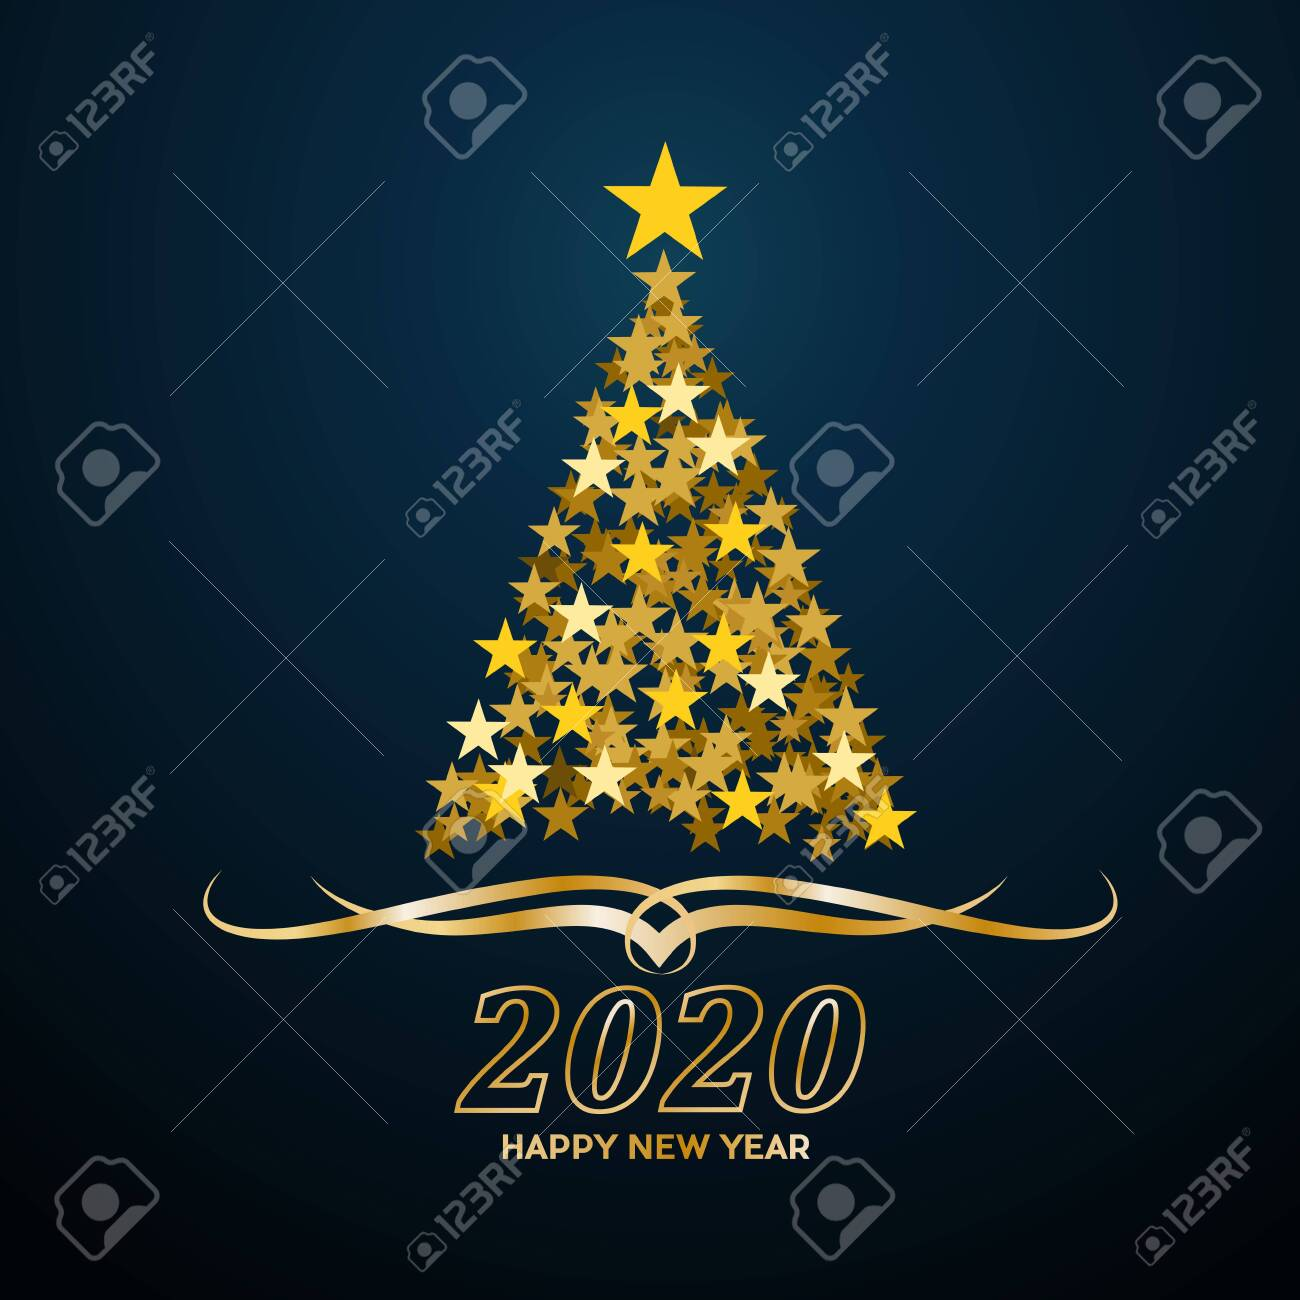 Christmas 2020.Vector Abstract Cover Golden Christmas Tree With Text 2020 Happy